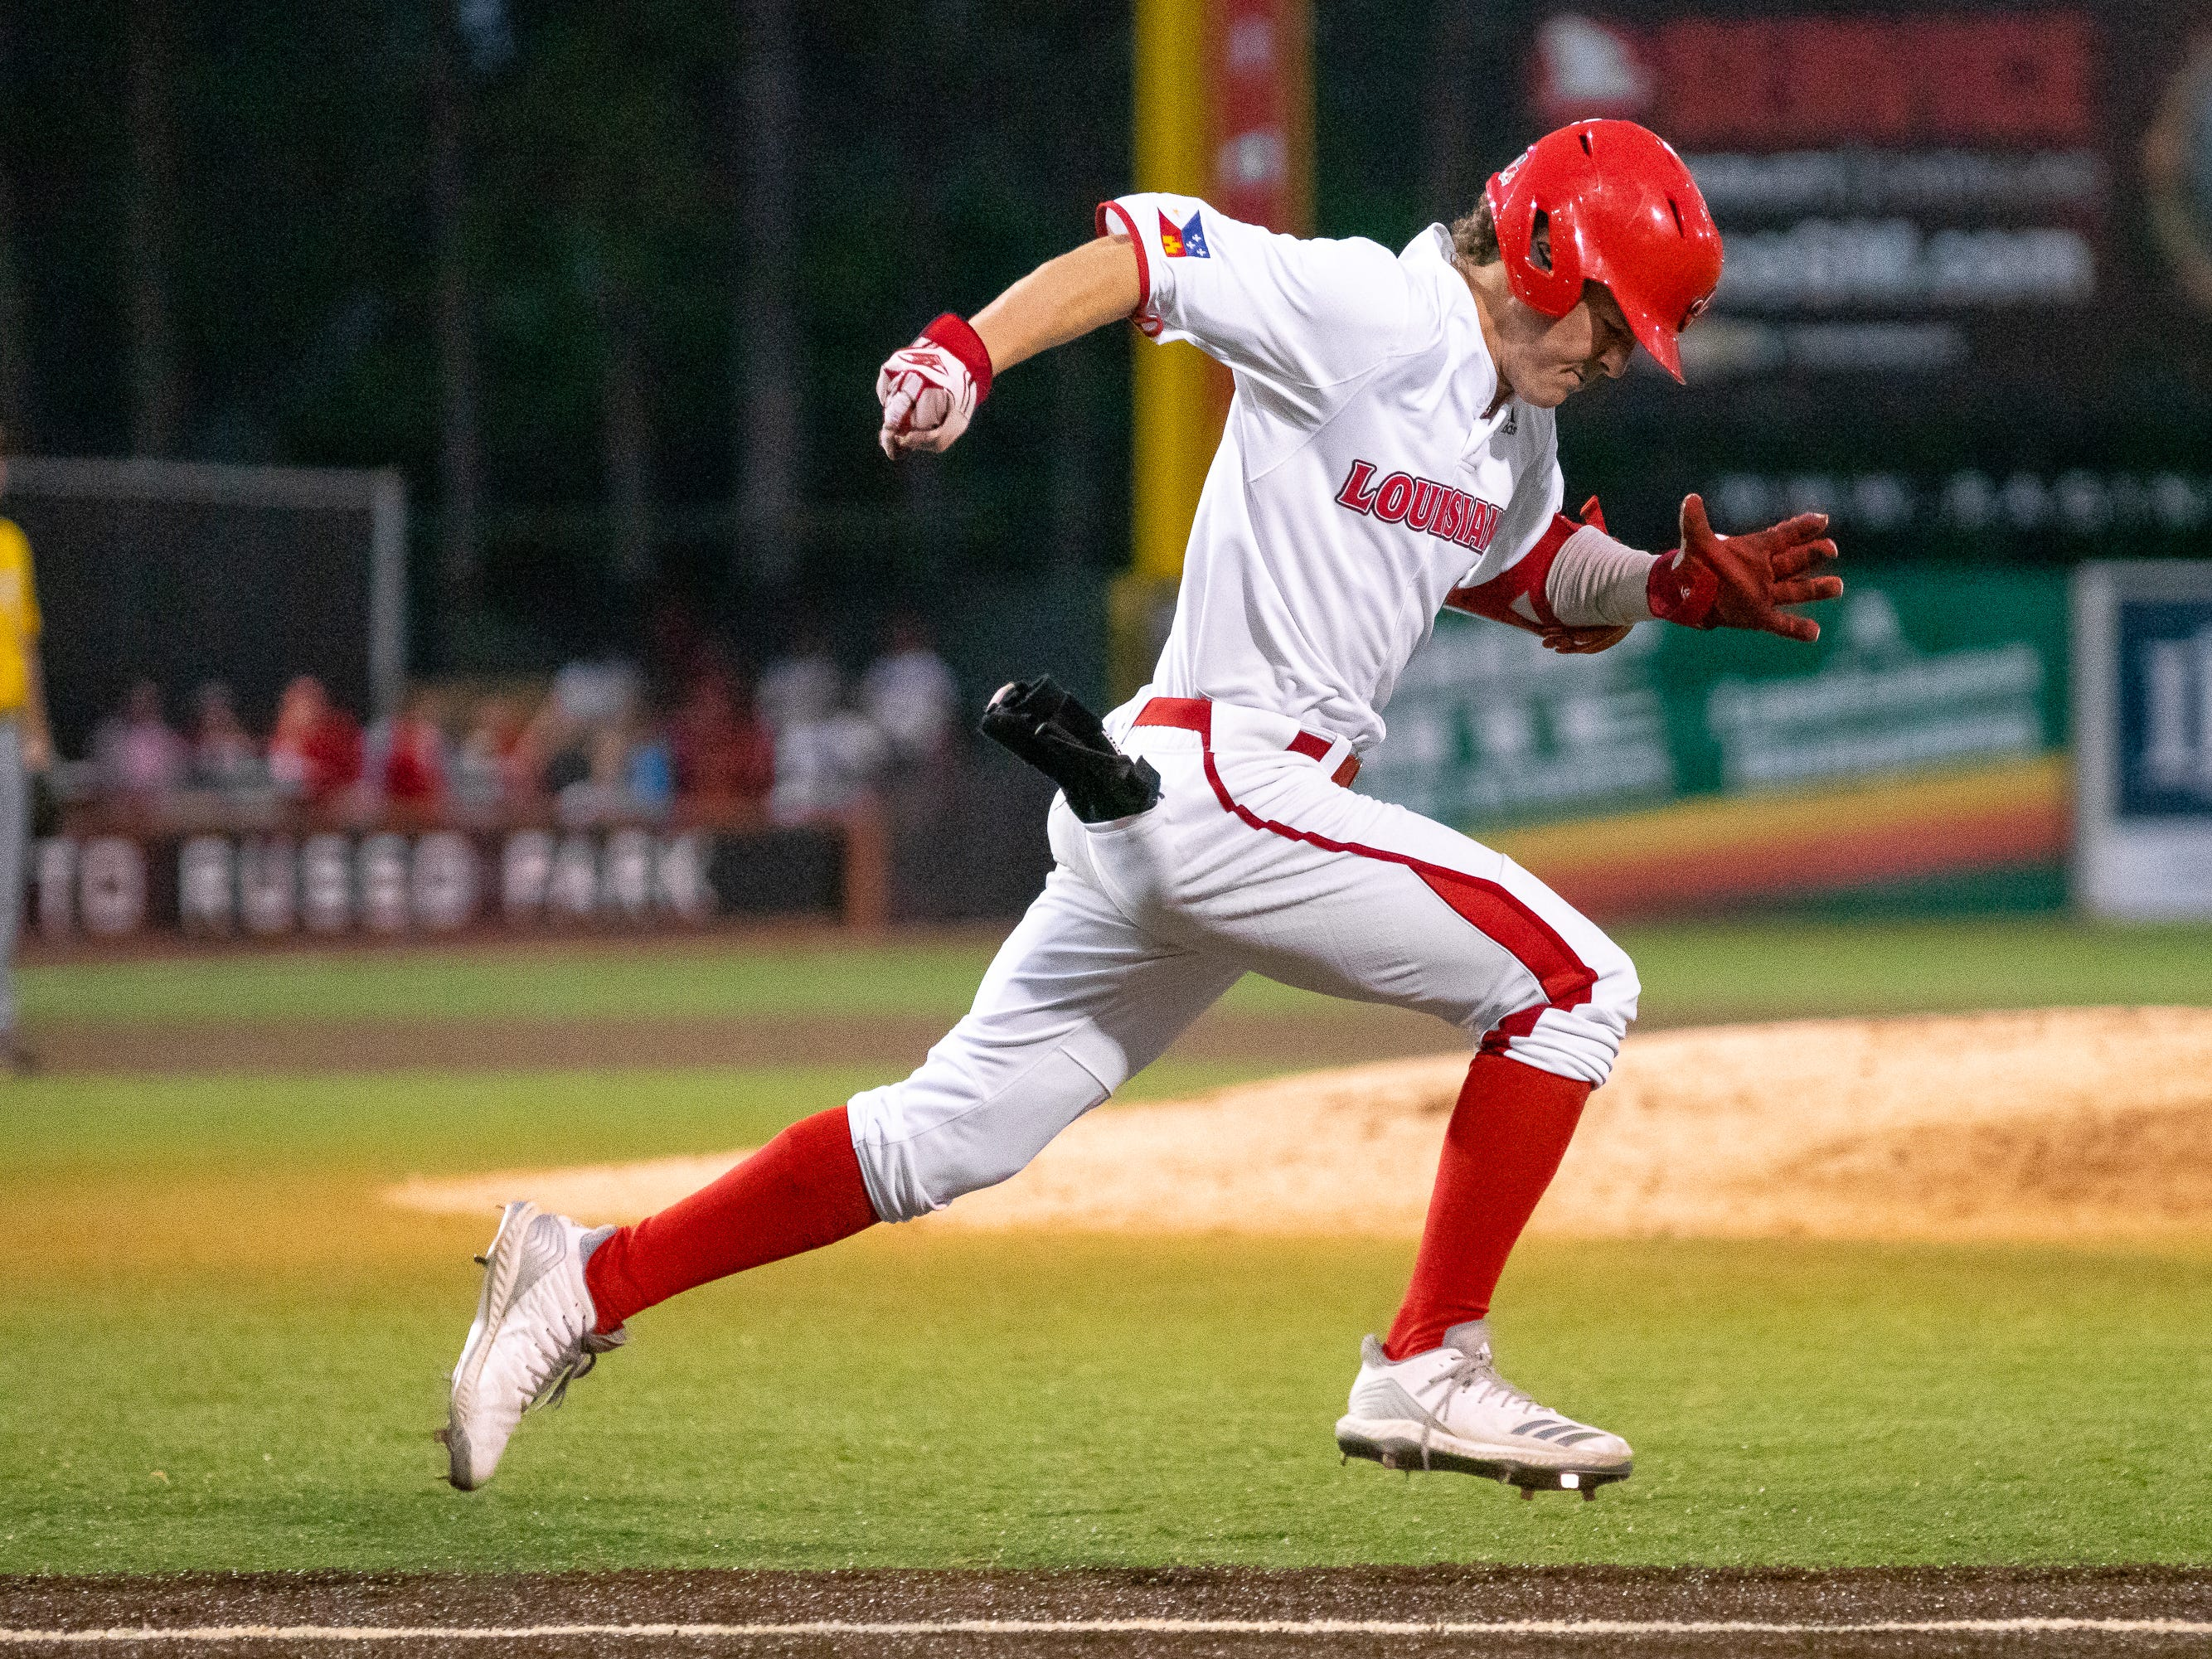 """UL's Hayden Cantrelle sprints to first base as the Ragin' Cajuns take on the Southern Miss Golden Eagles at M.L. """"Tigue"""" Moore Field on Wednesday, March 13, 2019."""